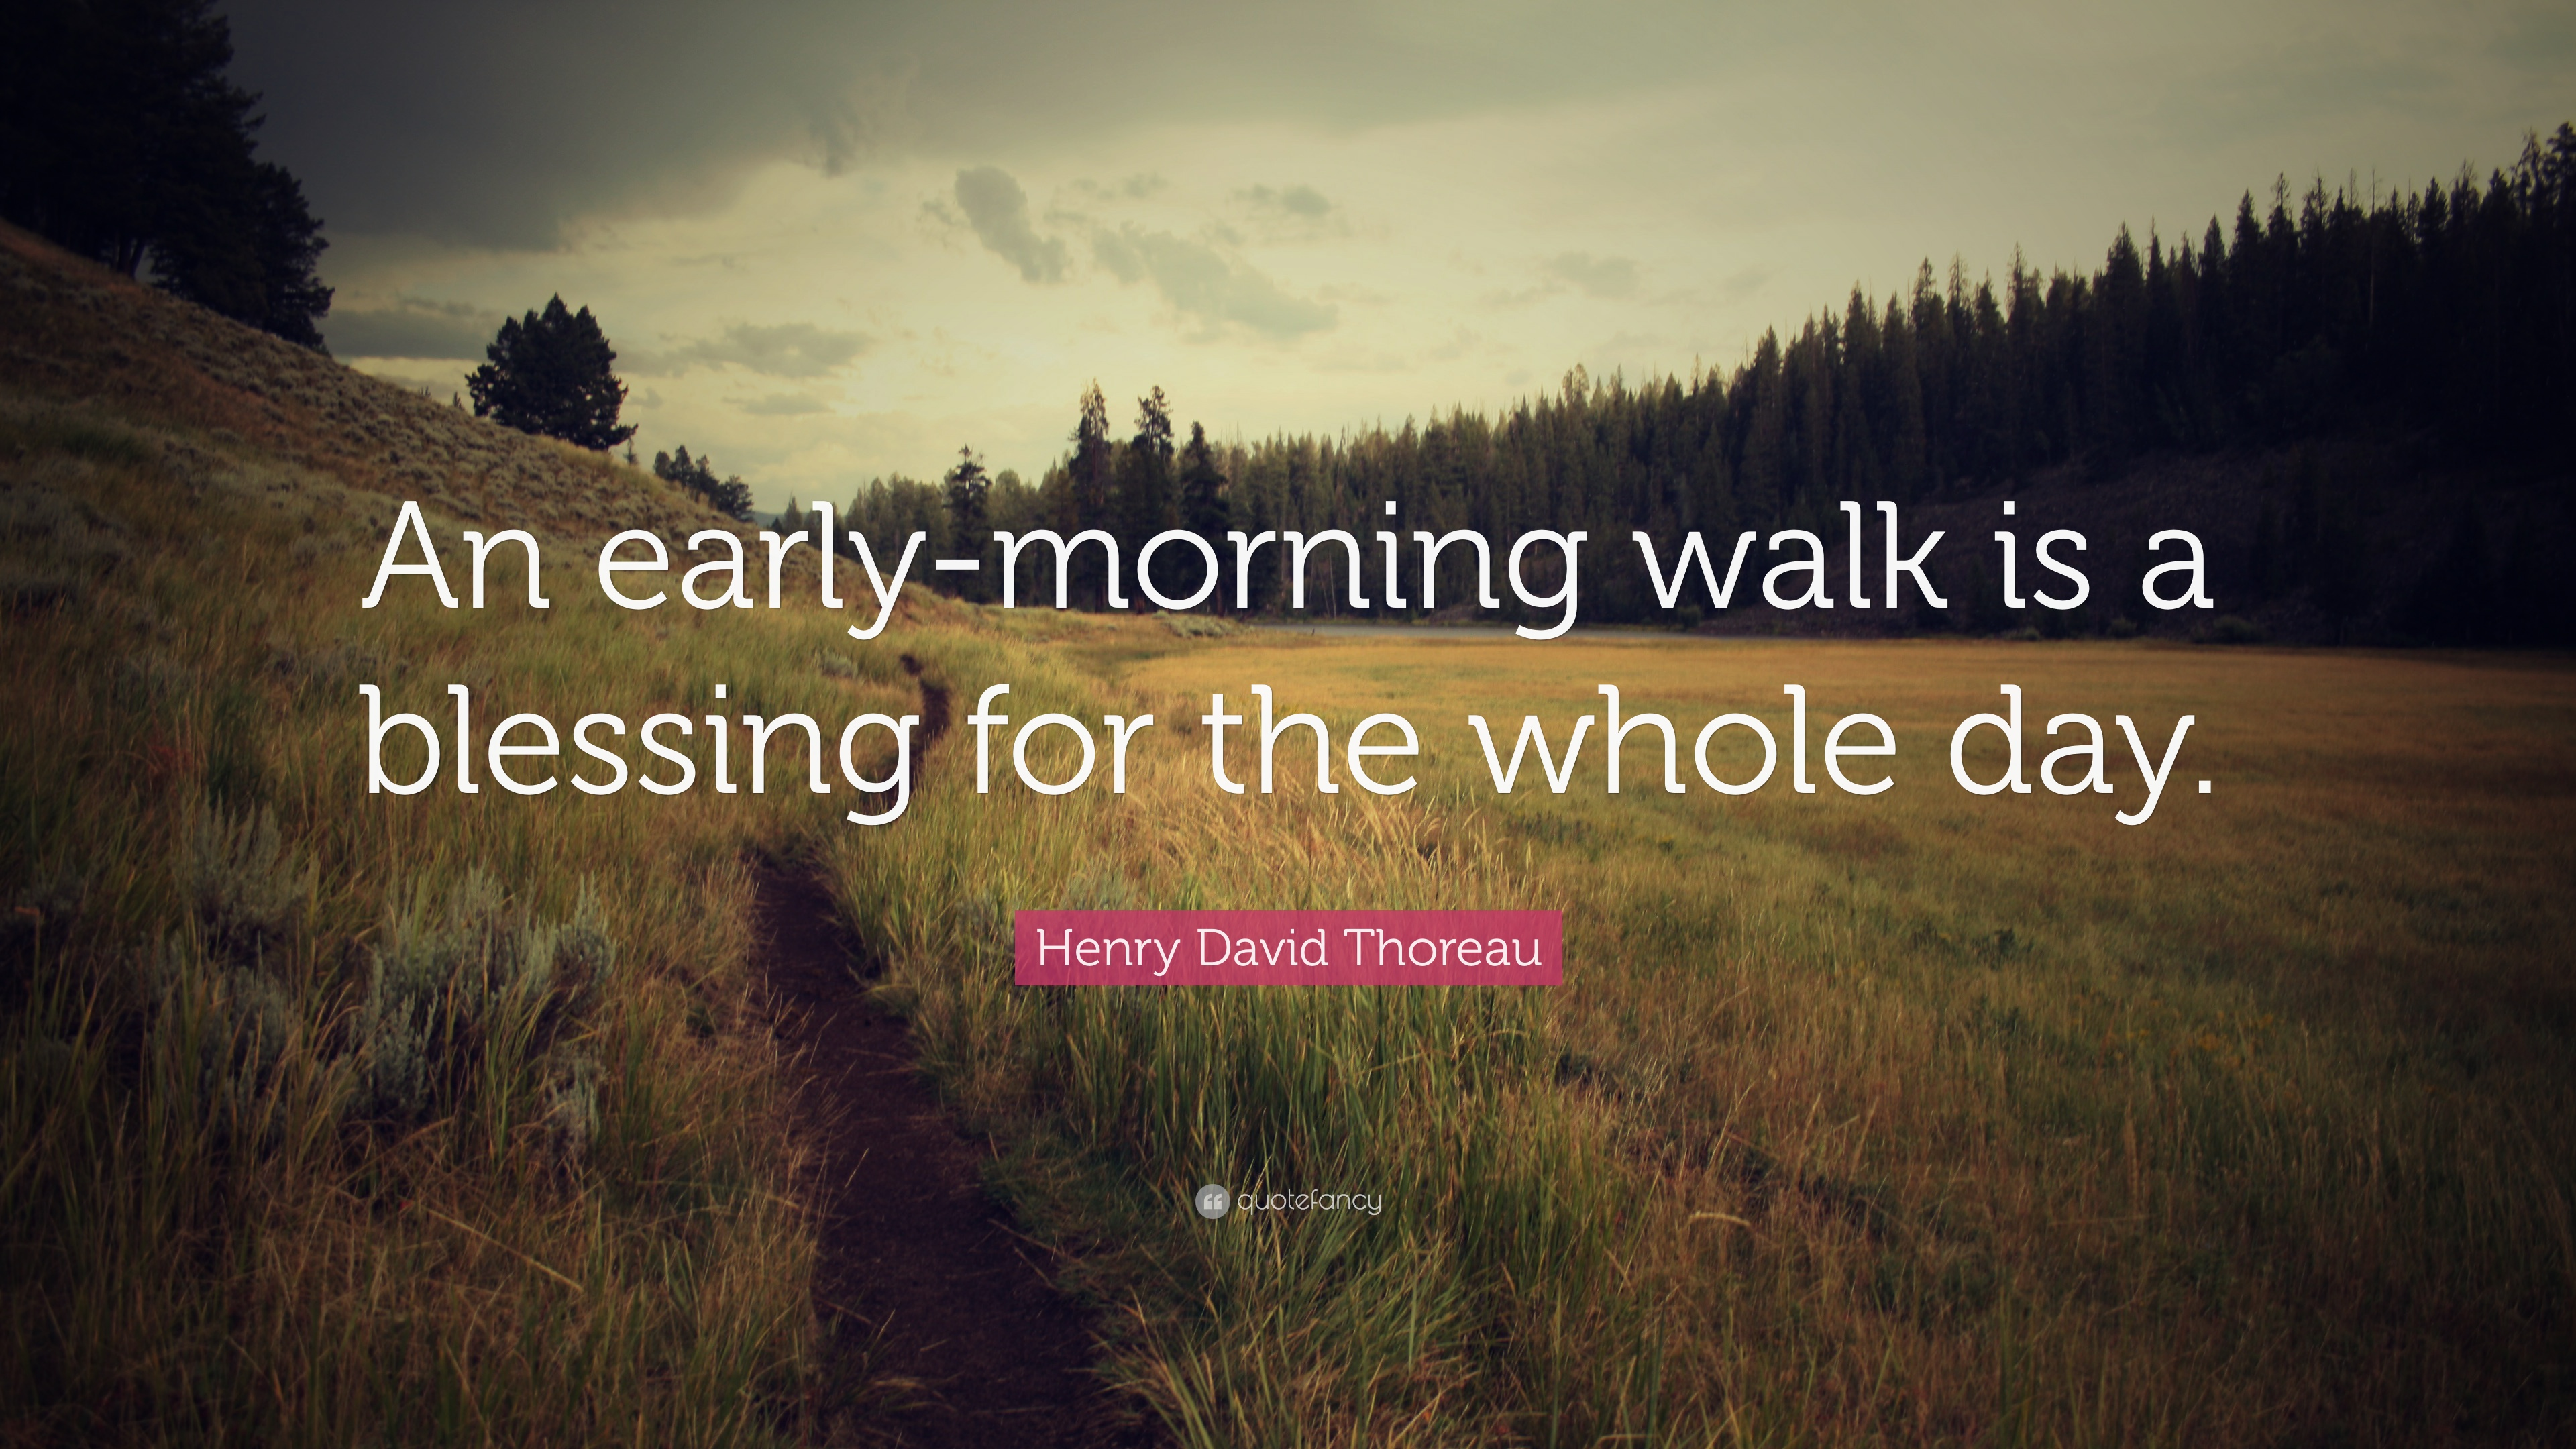 walking essay thoreau analysis